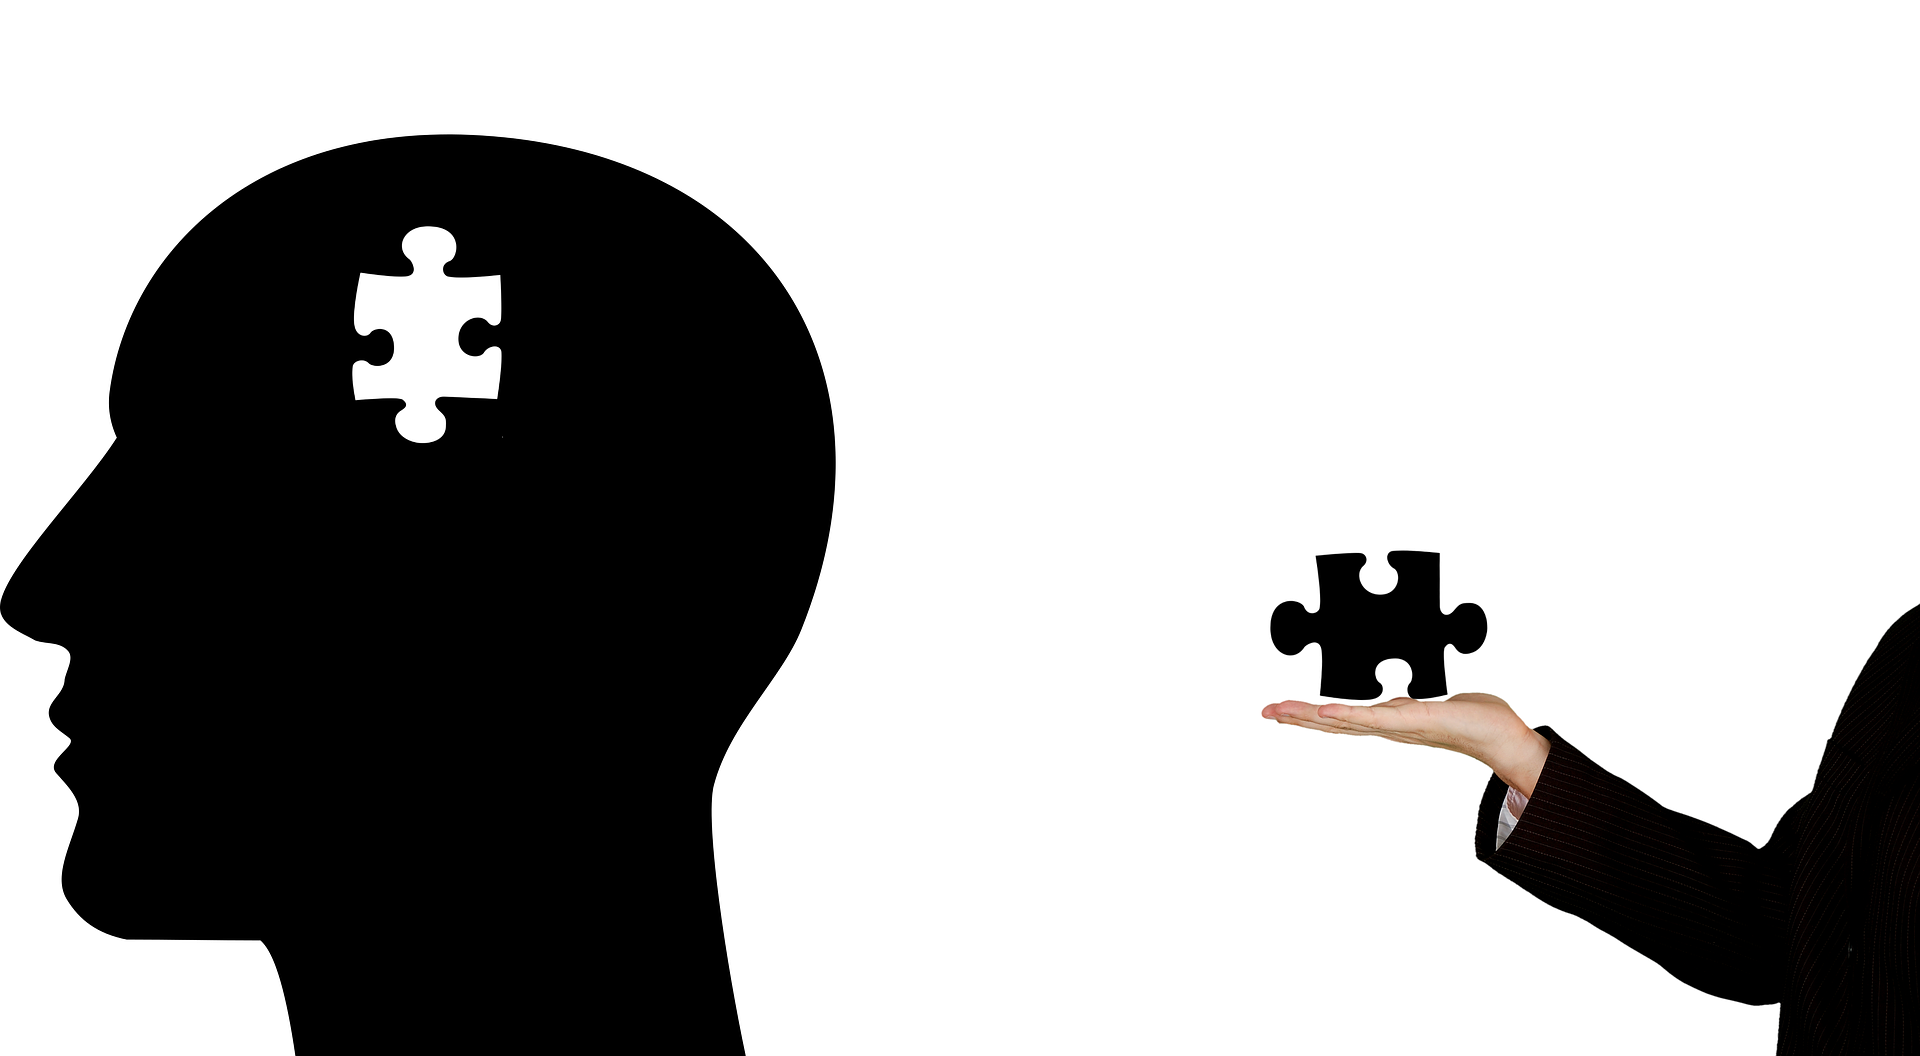 person's silhouette with puzzle piece